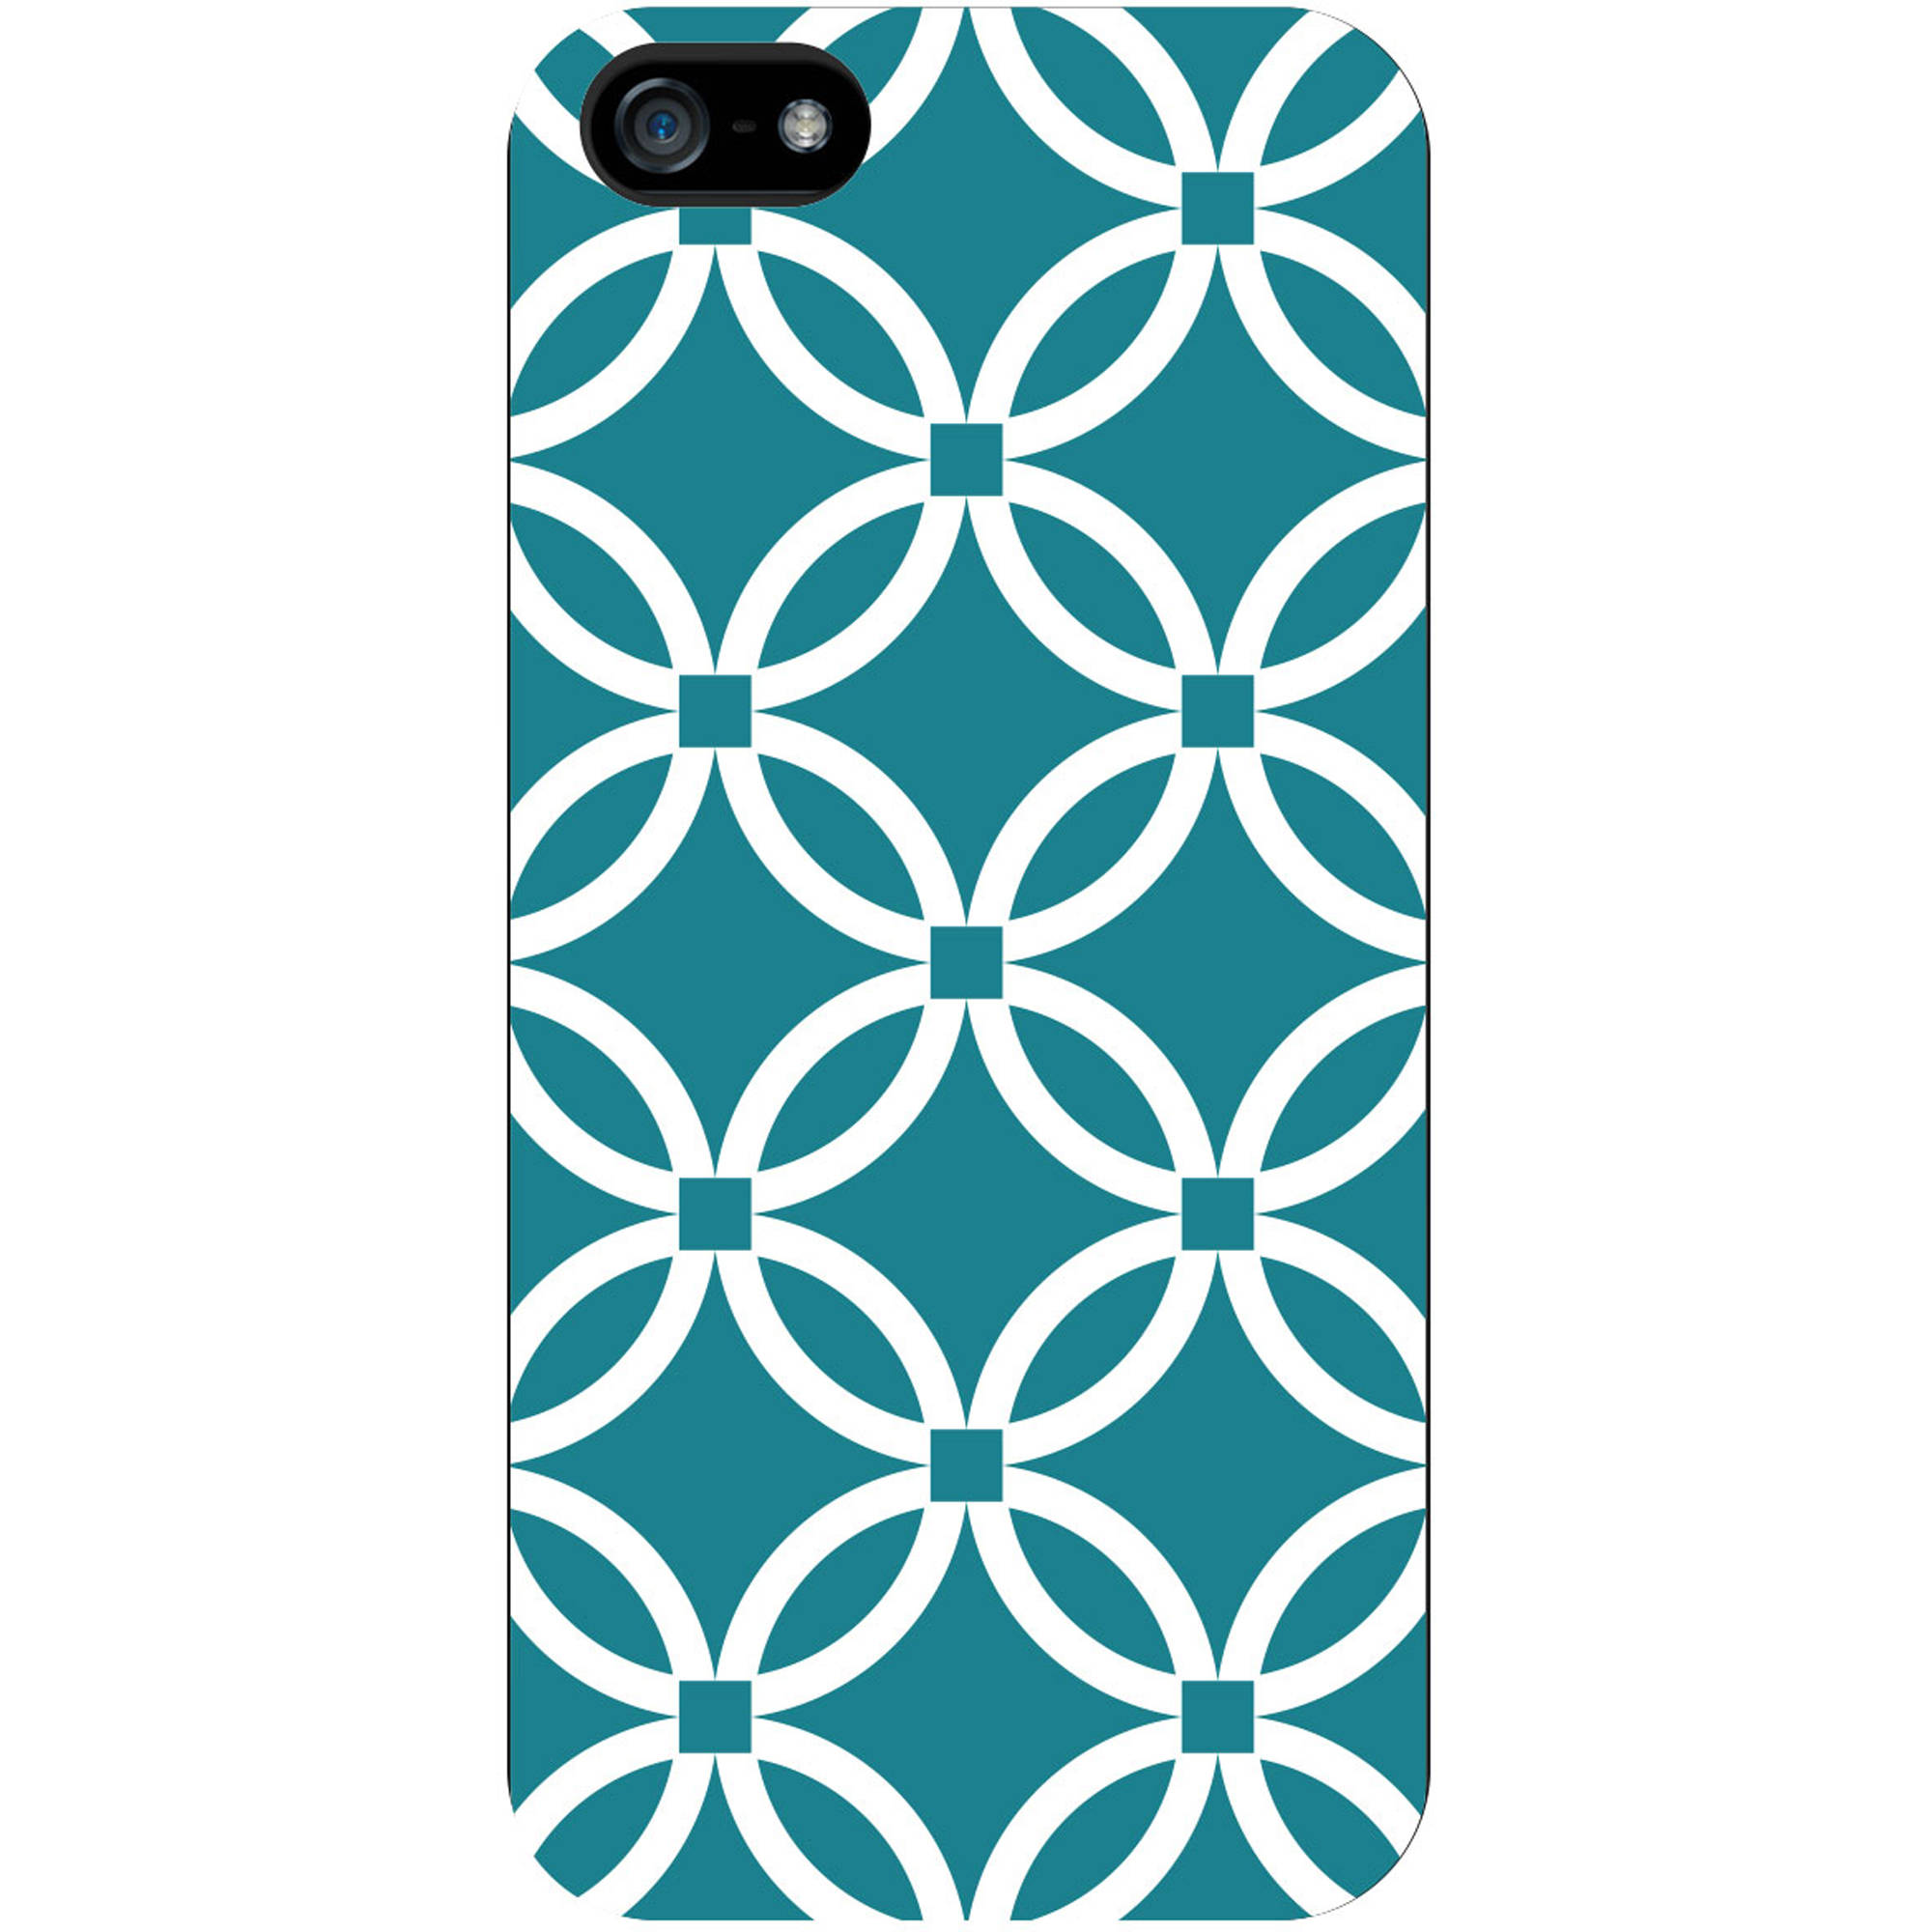 OTM iPhone 5 White Glossy Case Elm Bold Collection, Teal